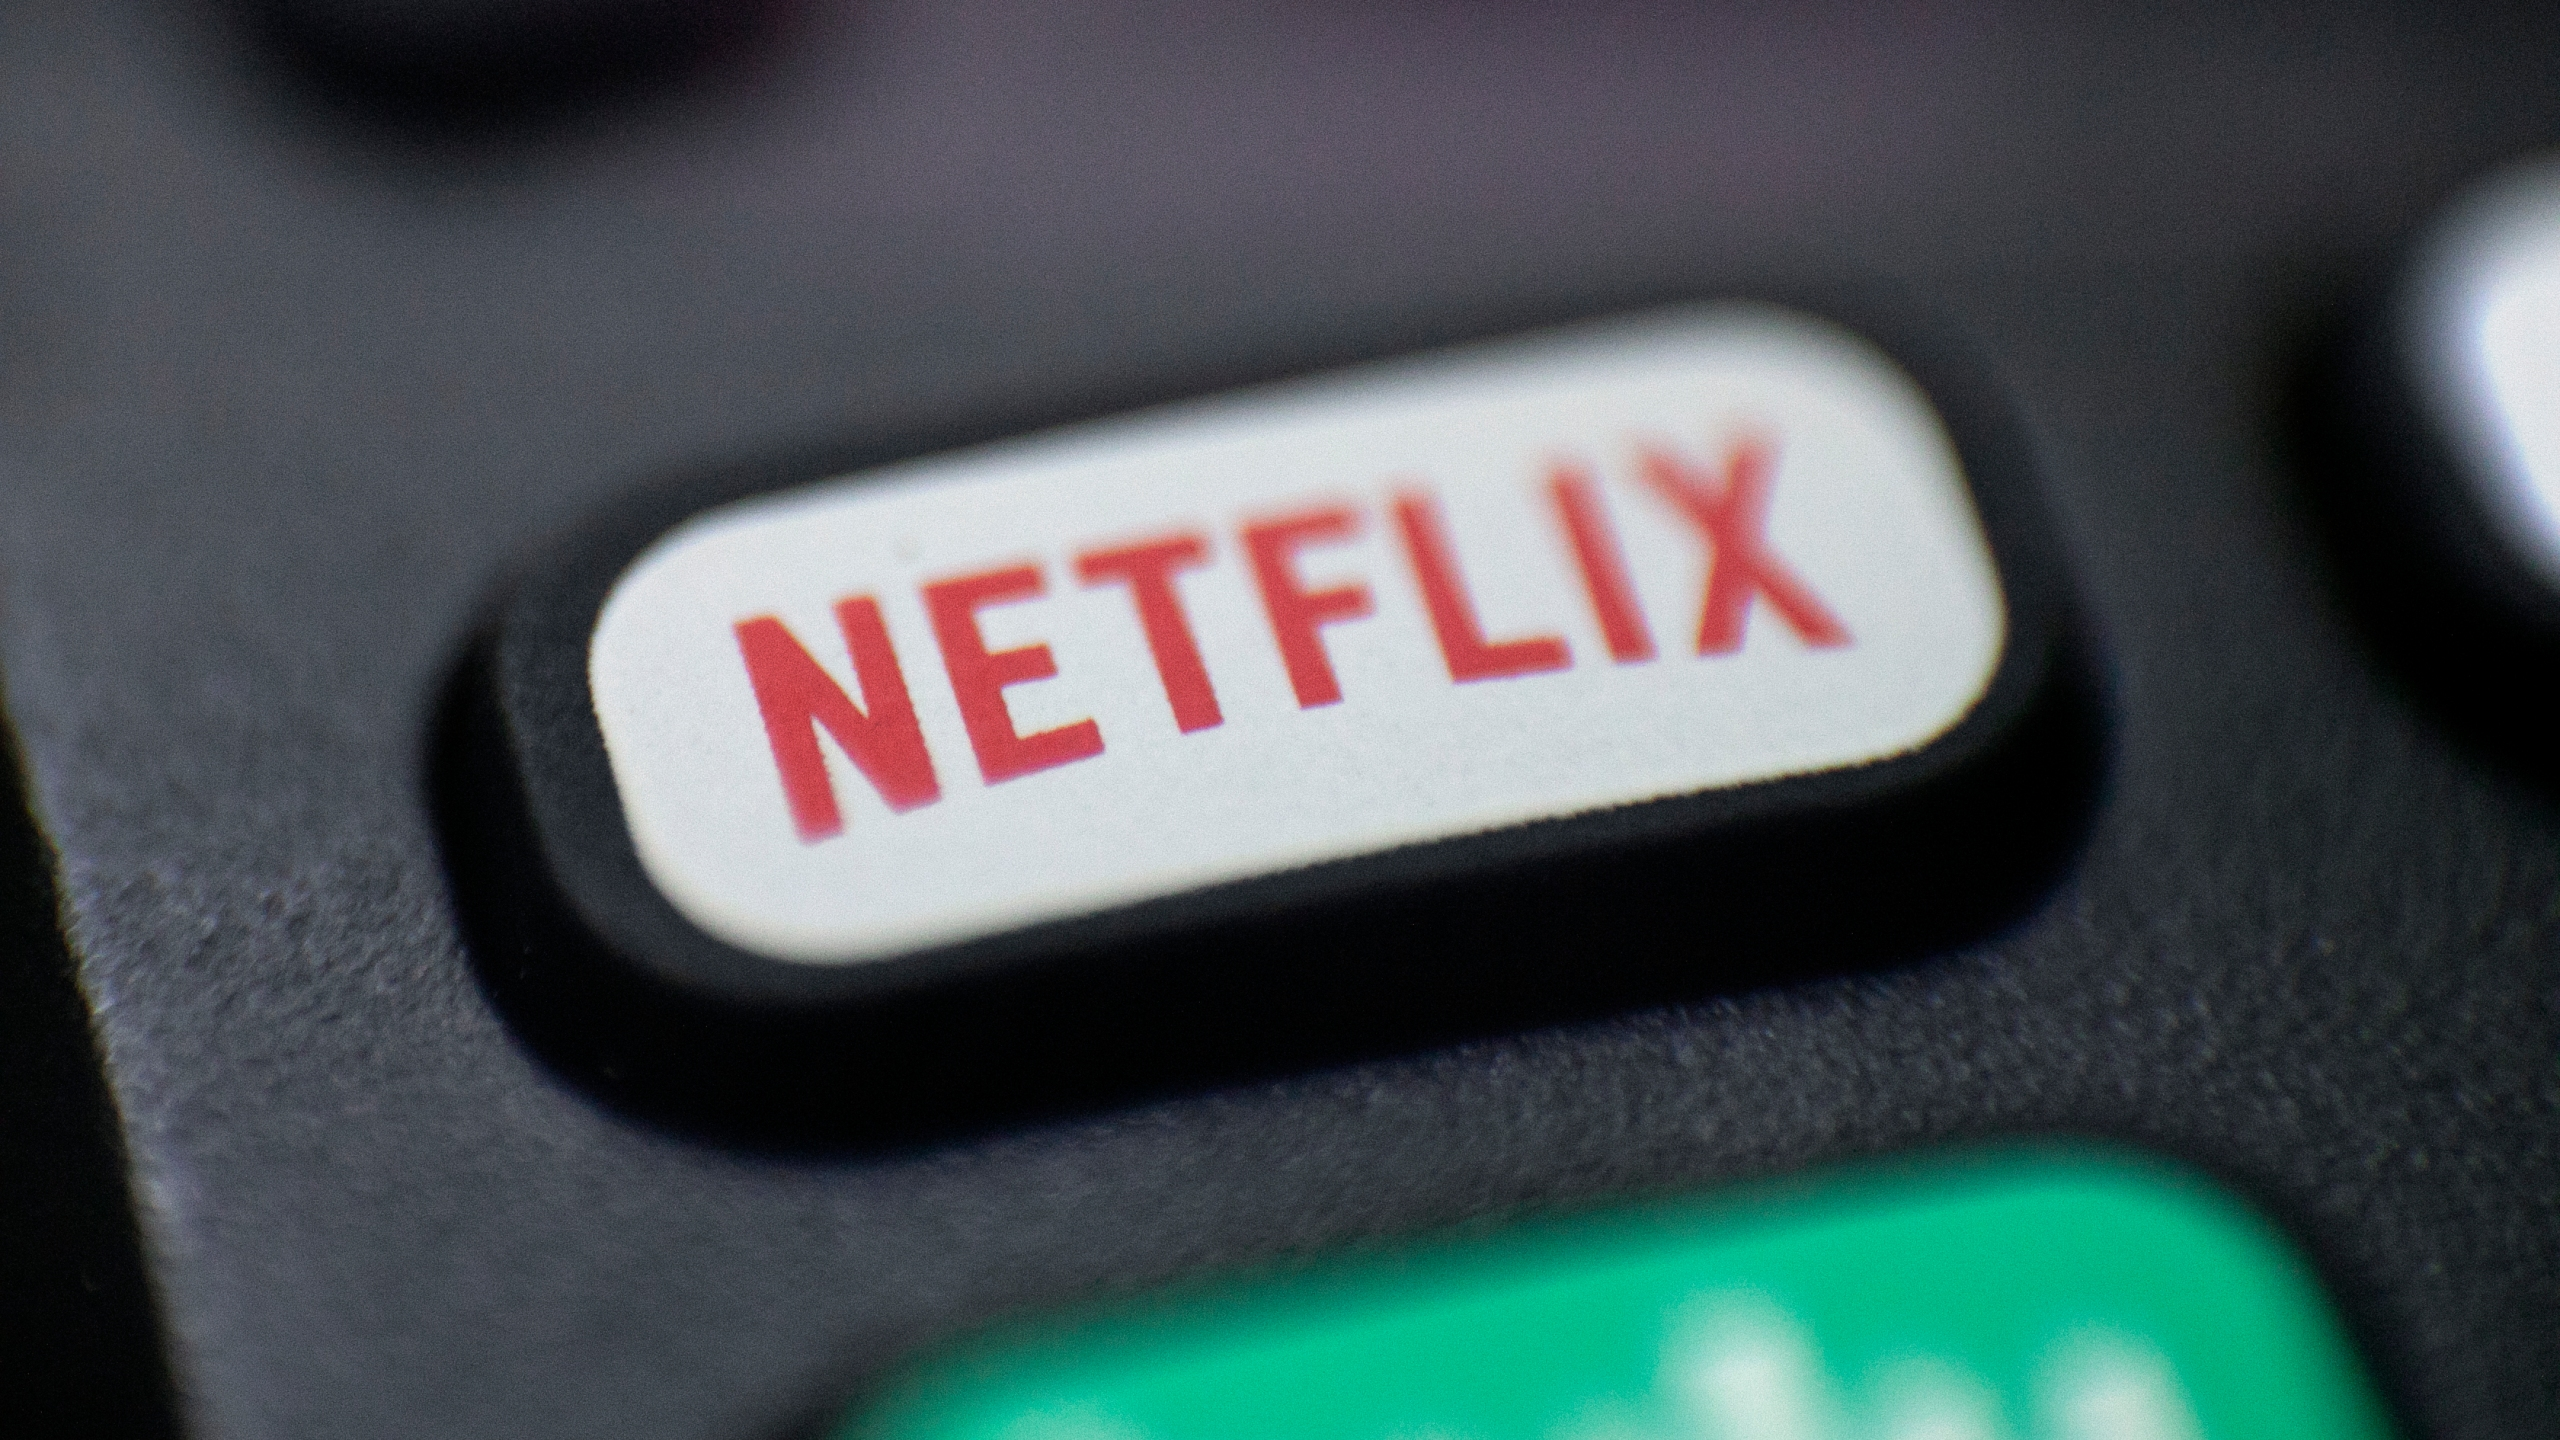 FILE - This Aug. 13, 2020 photo shows a logo for Netflix on a remote control in Portland, Ore. Netflix's rapid subscriber growth is slowing far faster than anticipated, Tuesday, April 20, 2021, as people who have been cooped at home during the pandemic are able to get out and do other things again. The video streaming service added 4 million more worldwide subscribers from January through March, its smallest gain during that three-month period in four years. (AP Photo/Jenny Kane, File)